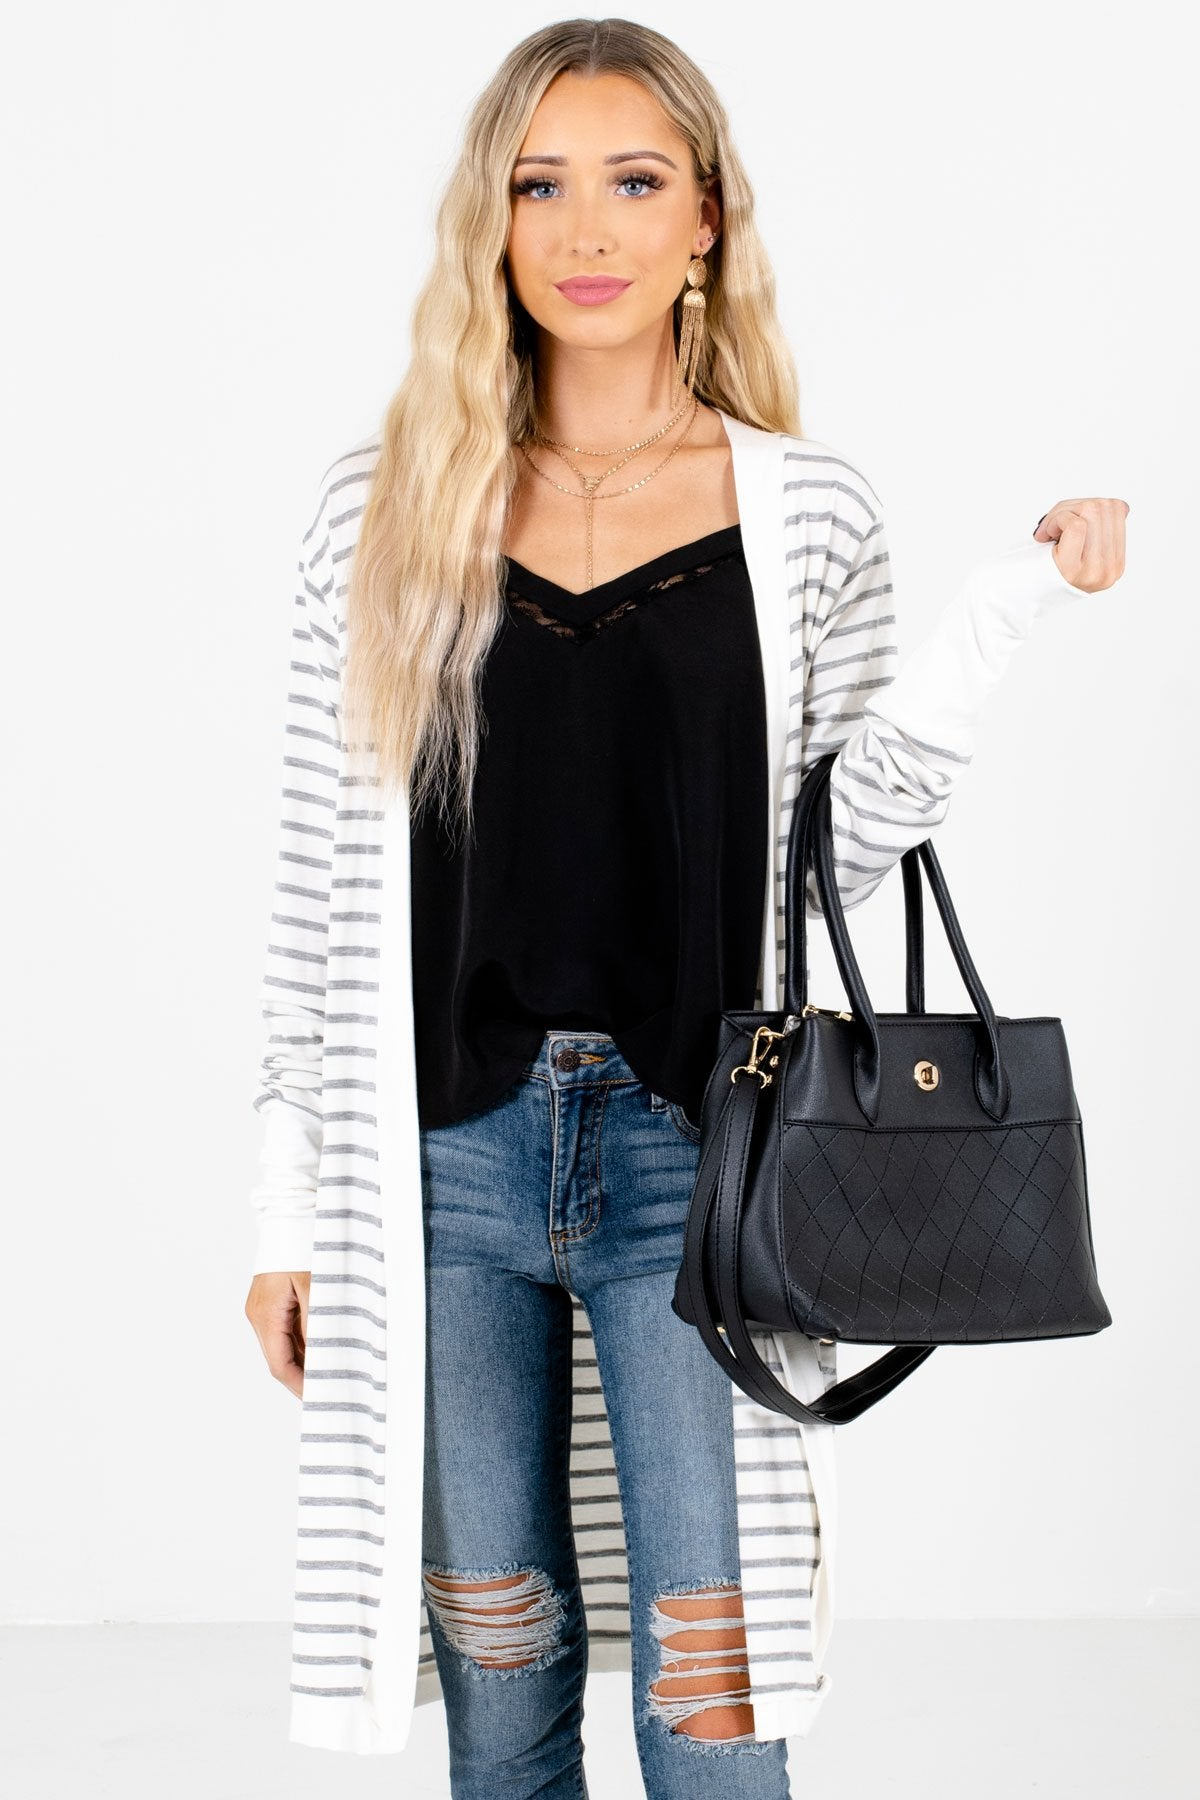 White and Gray Striped Boutique Cardigans for Women